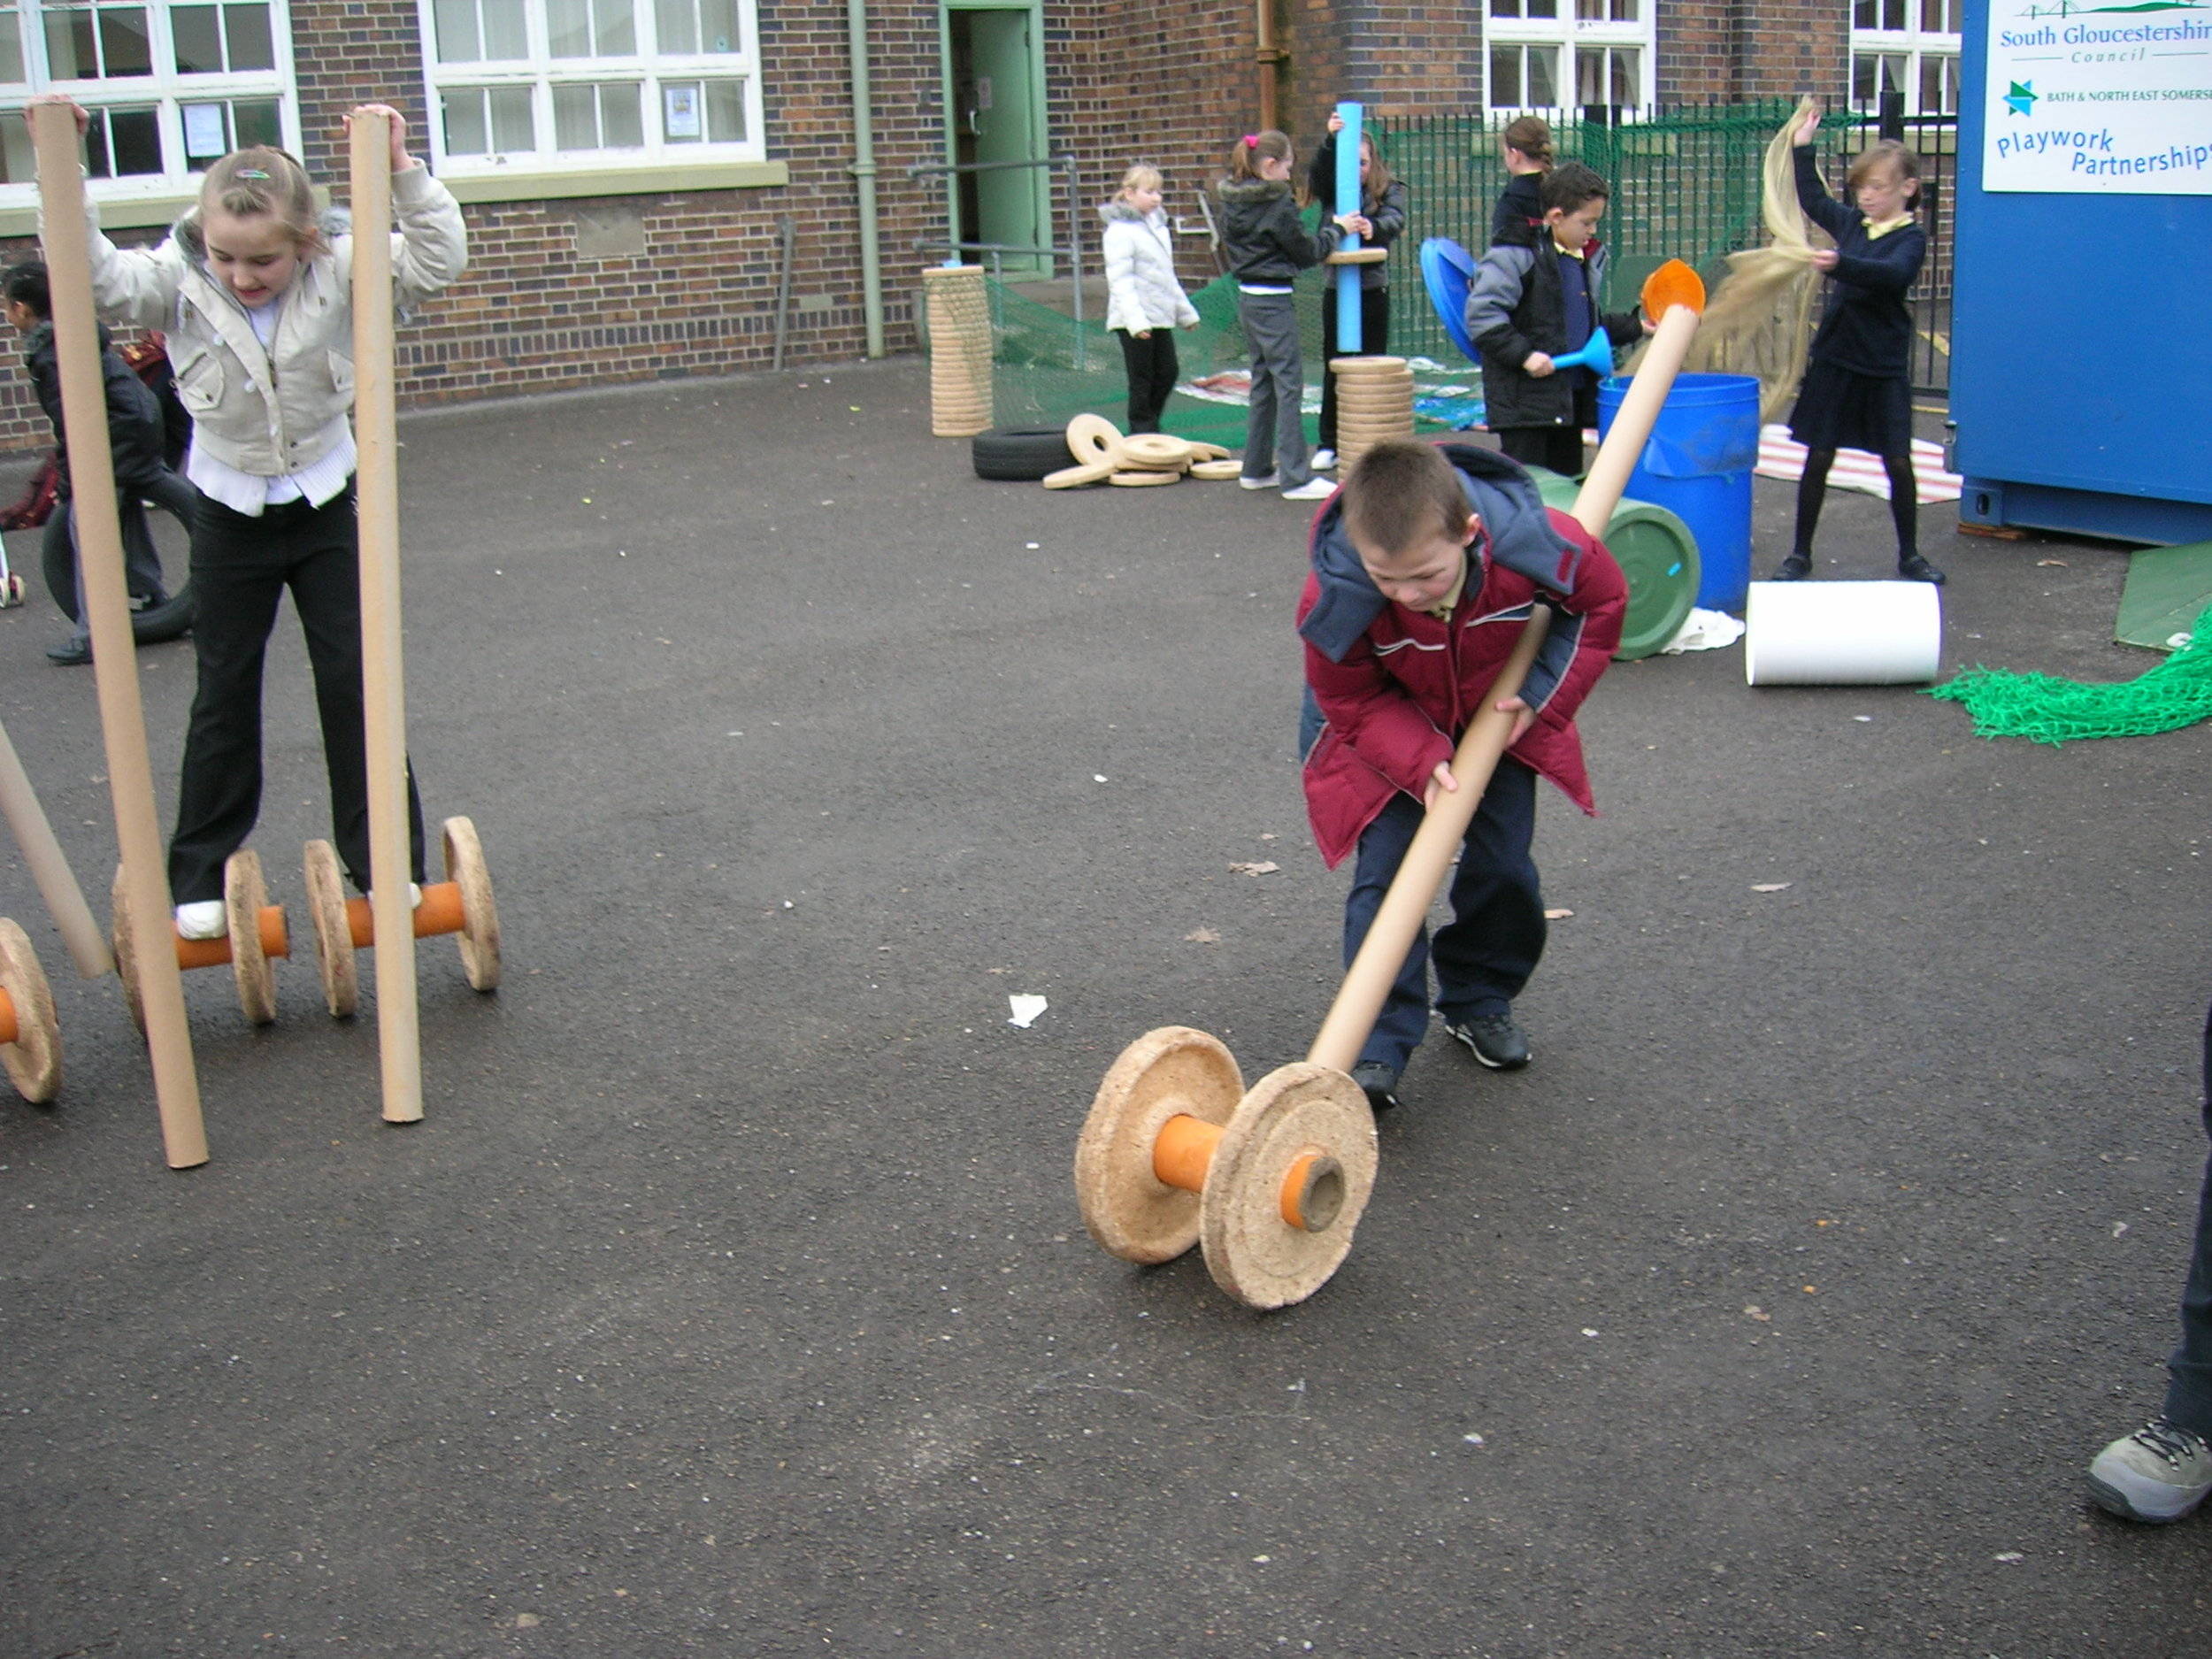 Adds risk and challenge into the play and helps children develop skills in managing risks for themselves.